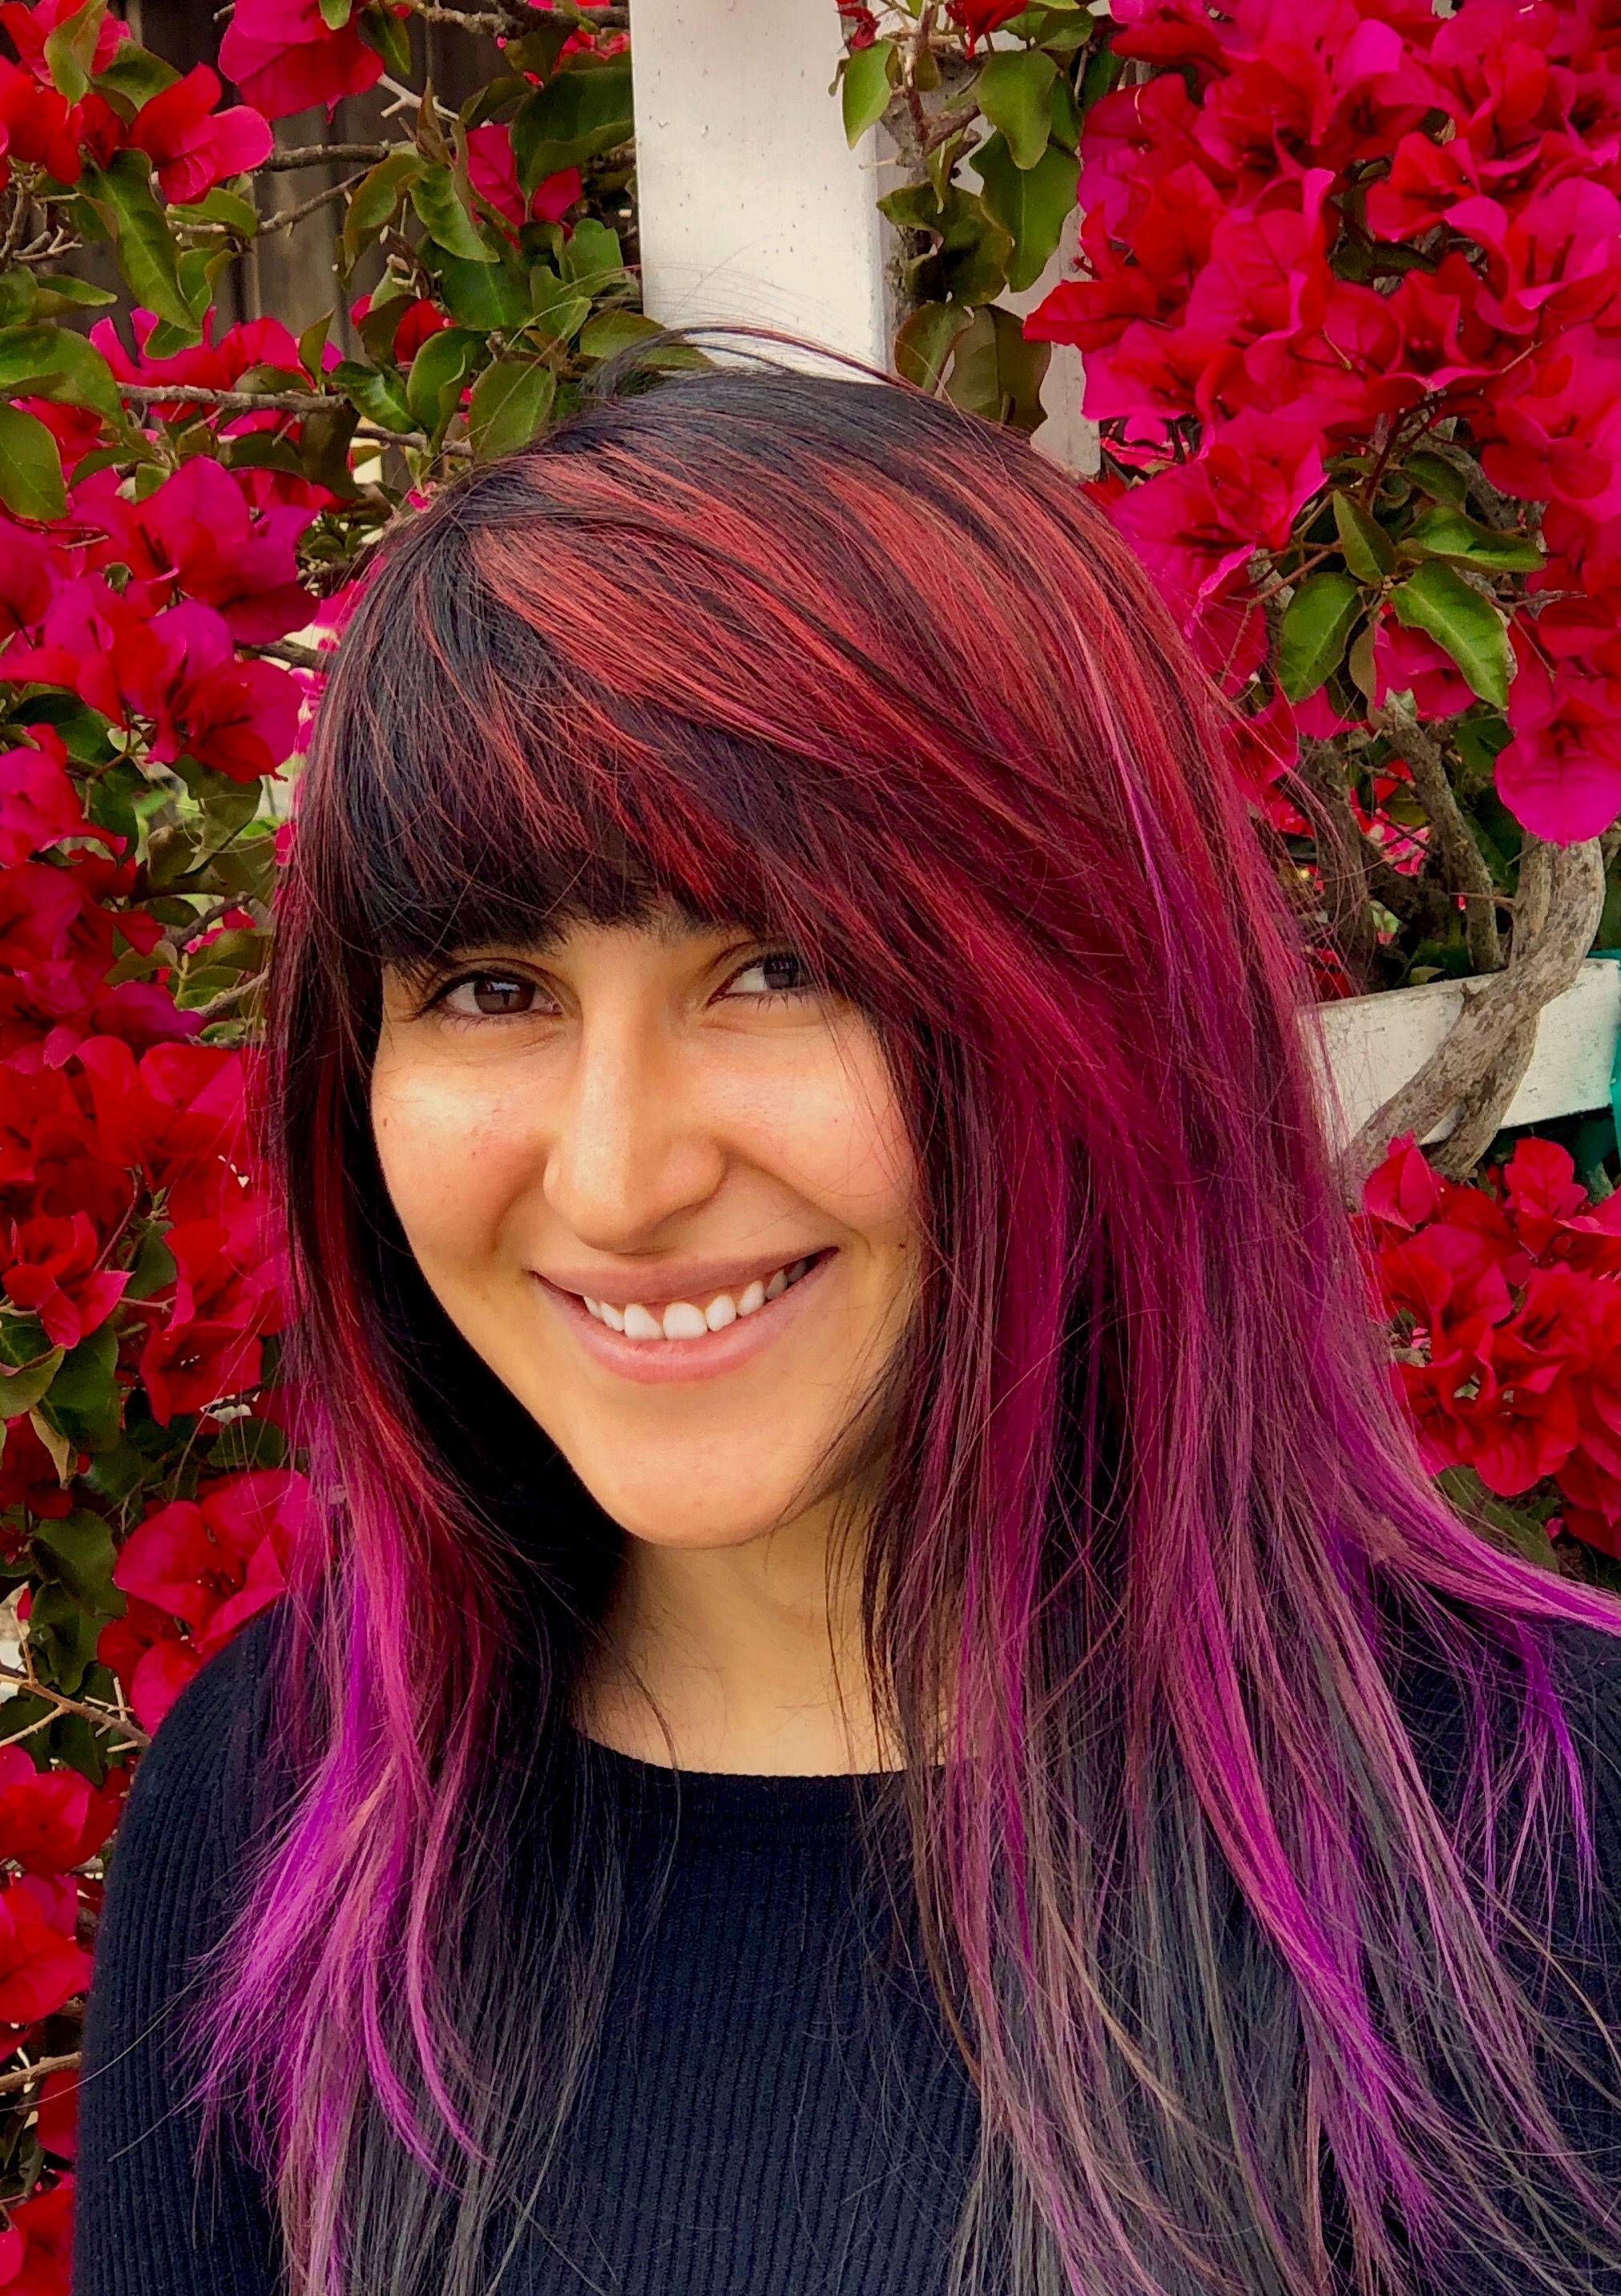 Skye Braunhut - Skye is our newest piano instructor. Skye has and continues to be trained in the Compassionate and Progressive Music Instruction Method(CPMI) created by Thomas Pedersen. She has years of experience playing and performing piano pieces of other composers as well as her own.